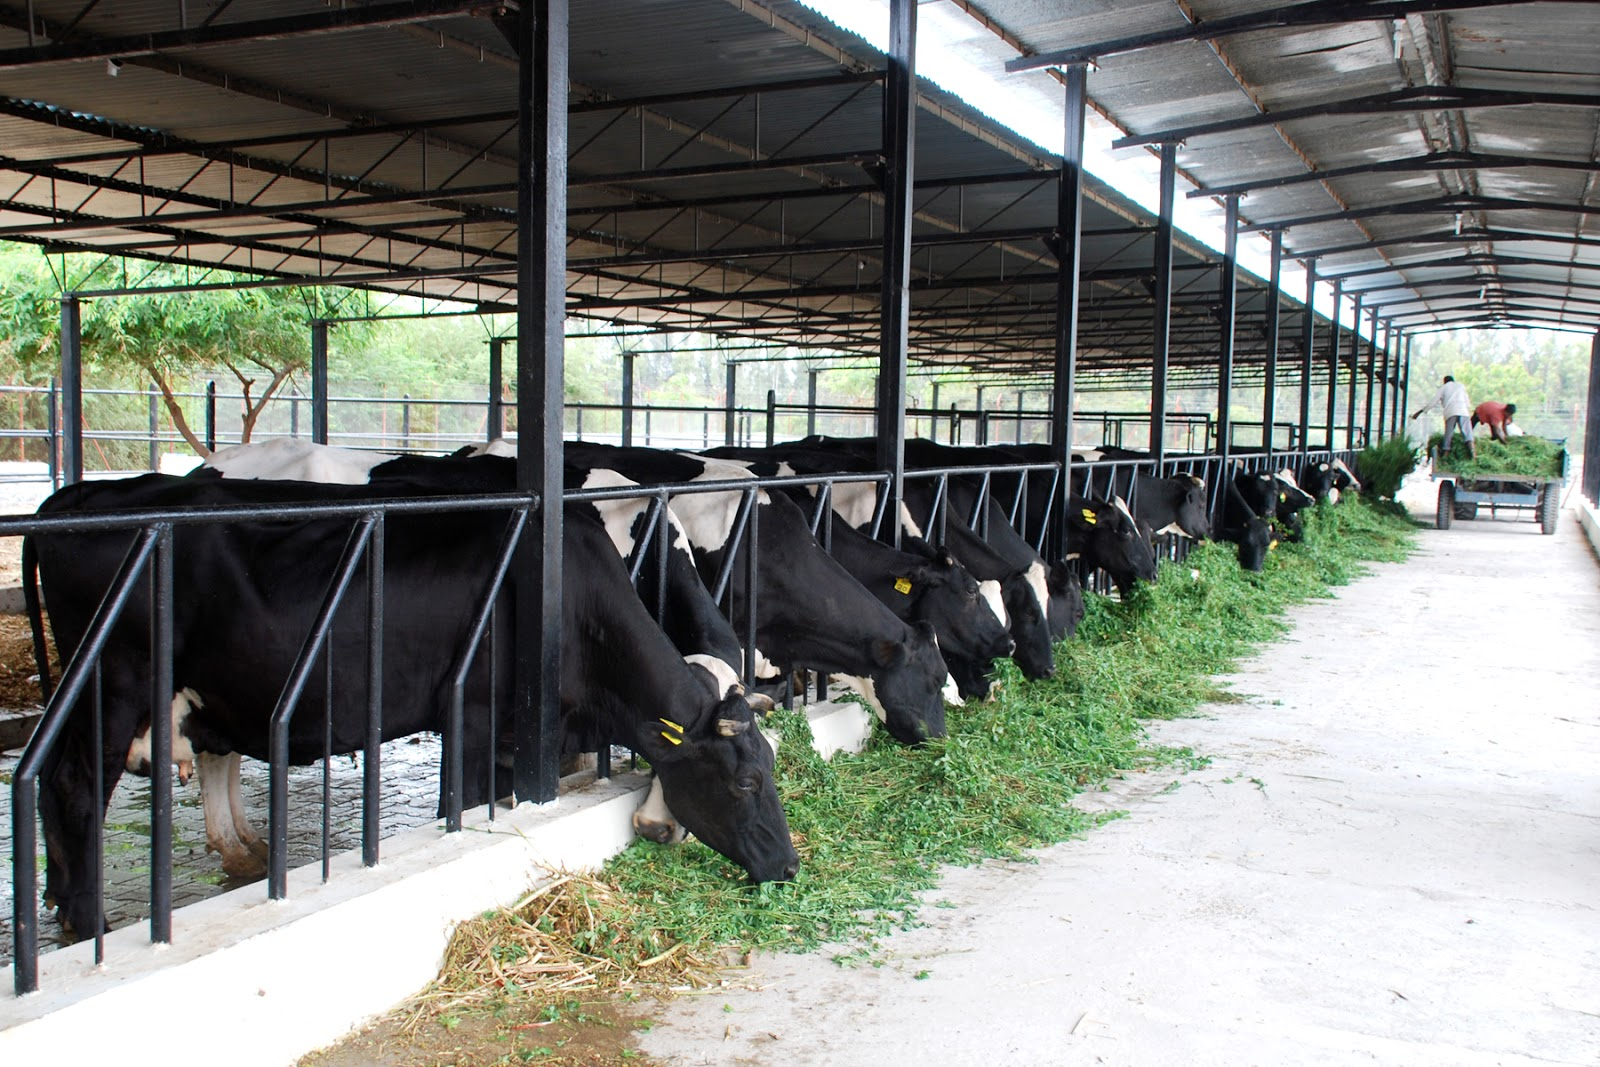 Dairy farming business plan in pakistan pharmacology